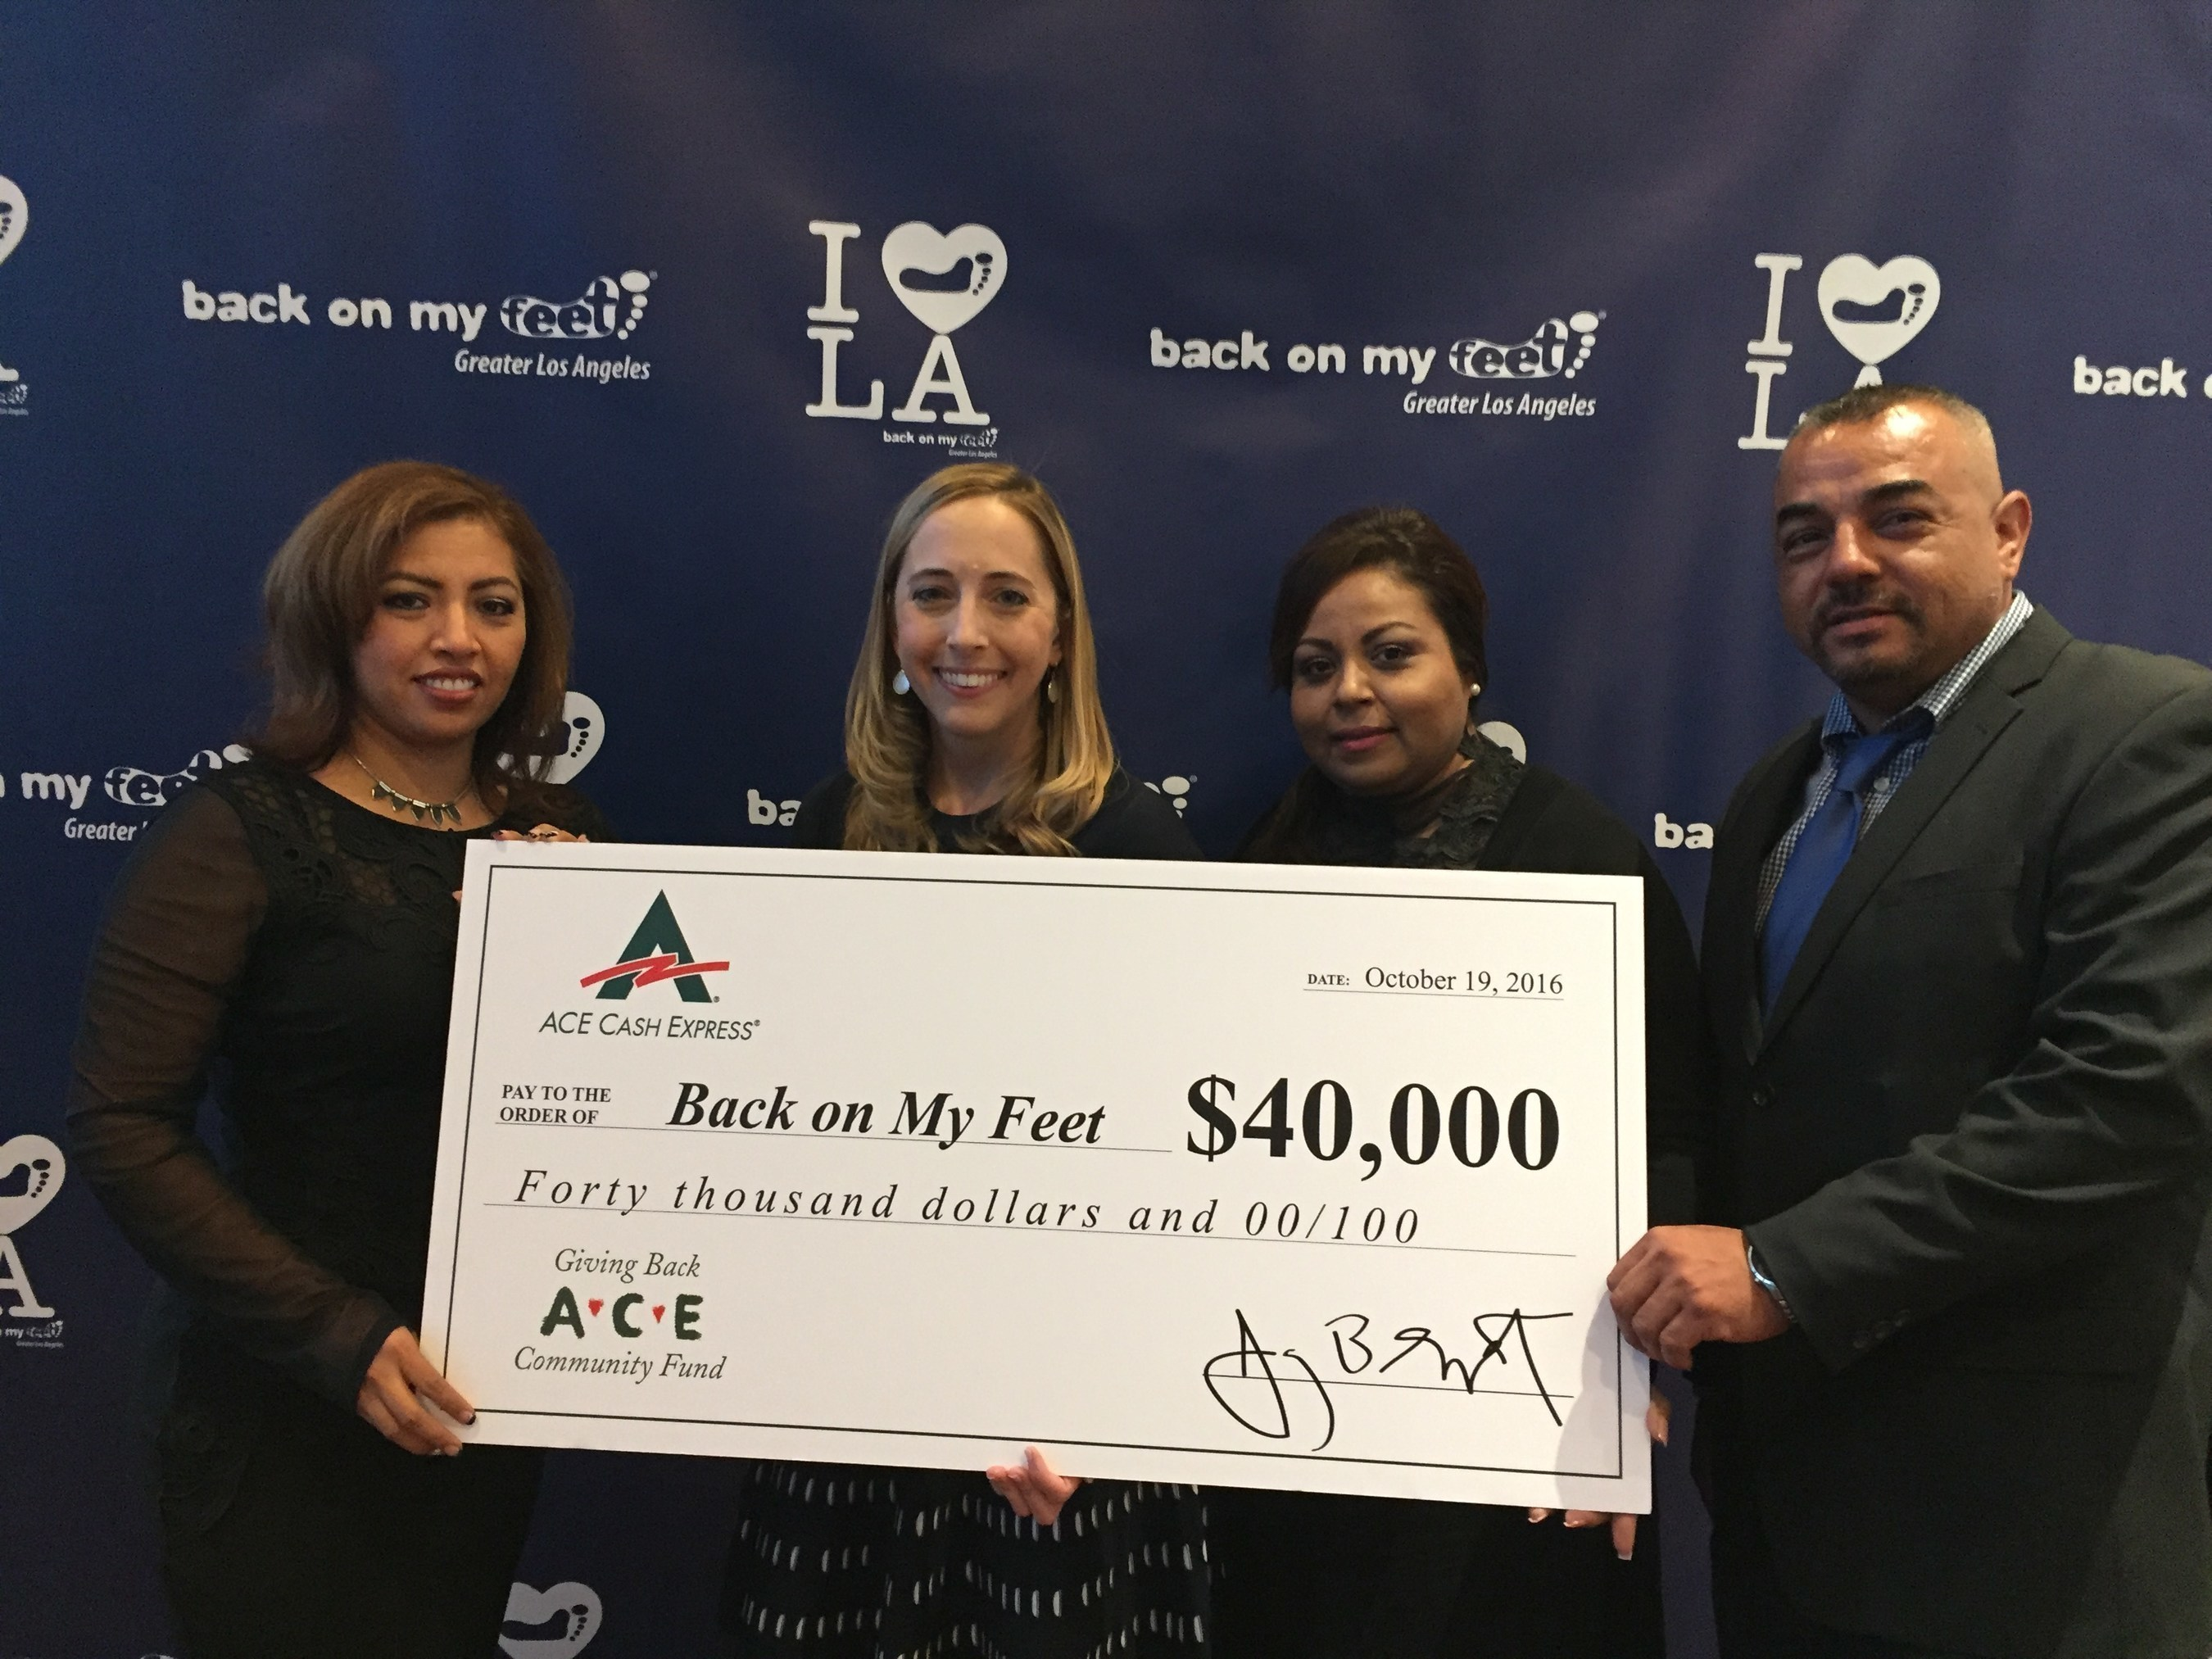 Pictured:  ACE representatives present check to Susan Patena, Development Director, Back on My Feet Greater Los Angeles